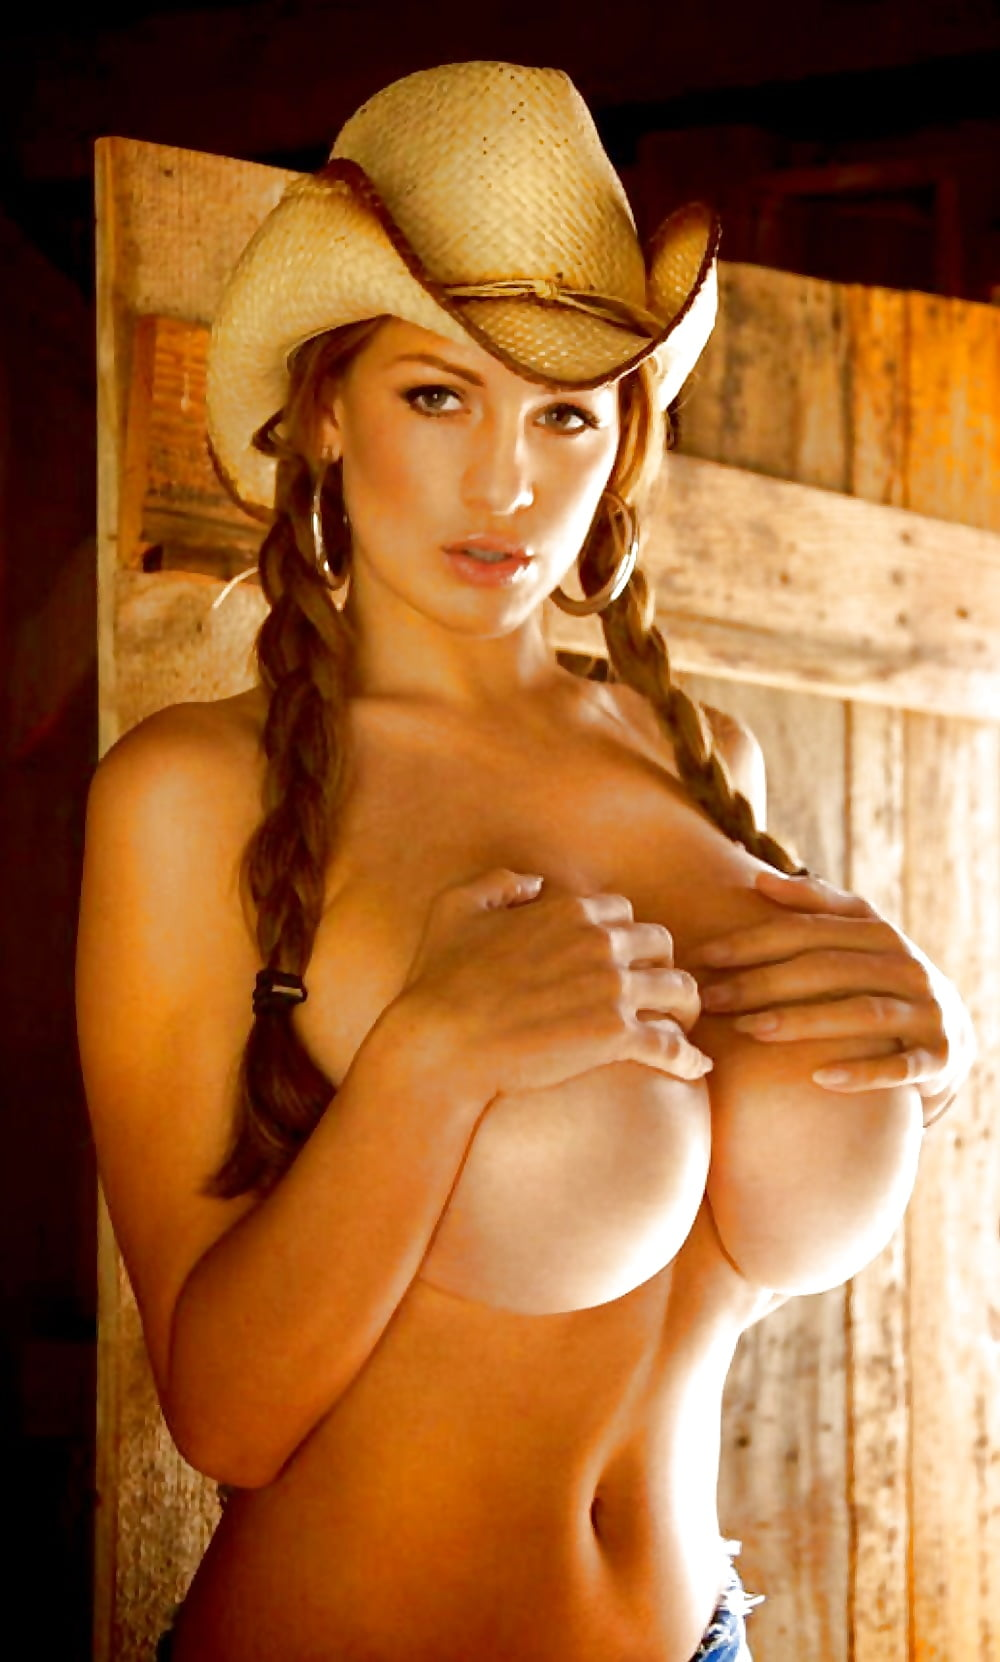 Cousin country girls naked boobs